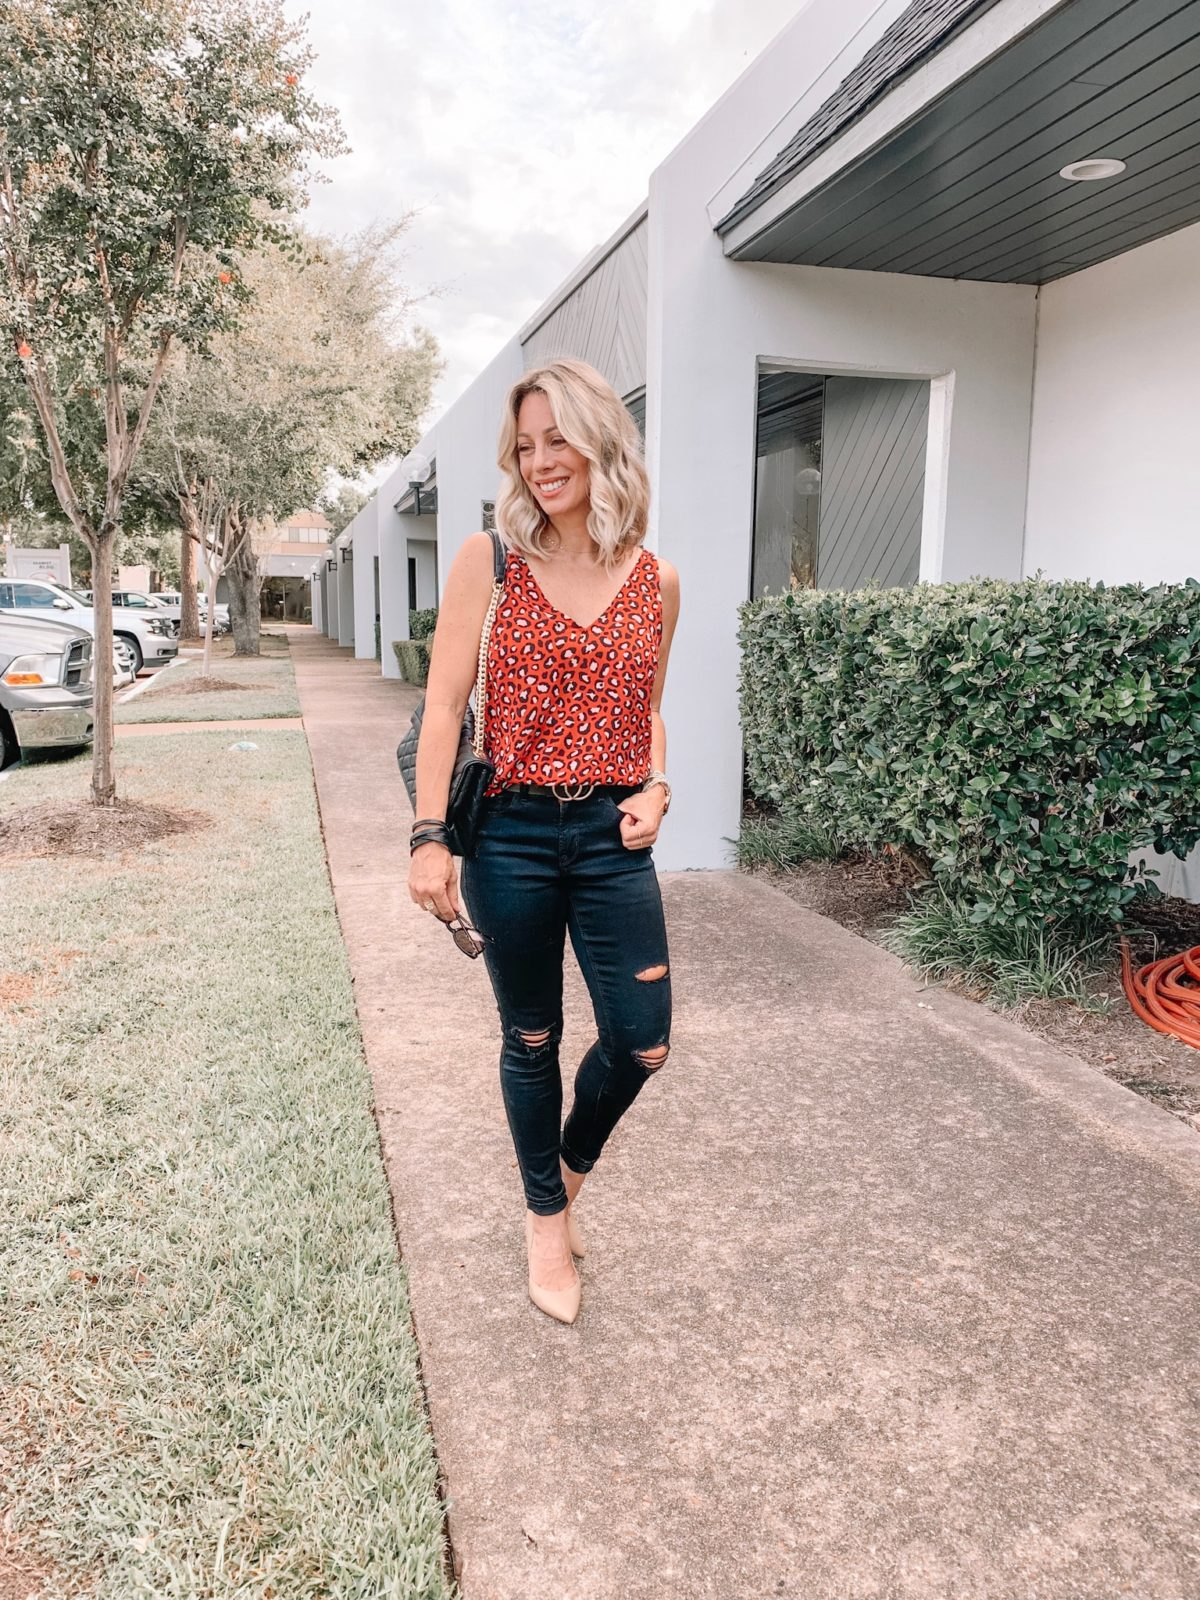 Leopard Tank and Black Jeans